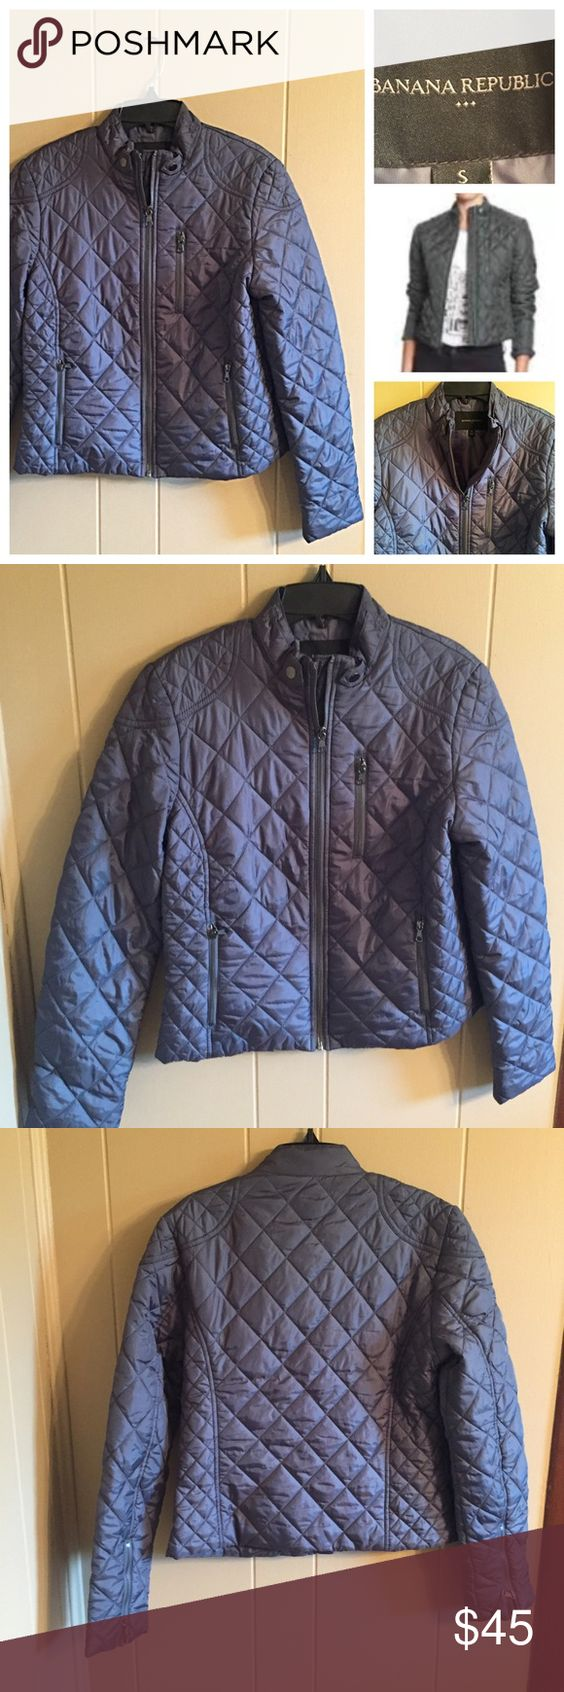 Banana Republic quilted jacket in petrol blue Beautiful quilted jacket. The color is petrol blue (bluish gray) size small in new condition. Excellent quality. Banana Republic Jackets & Coats